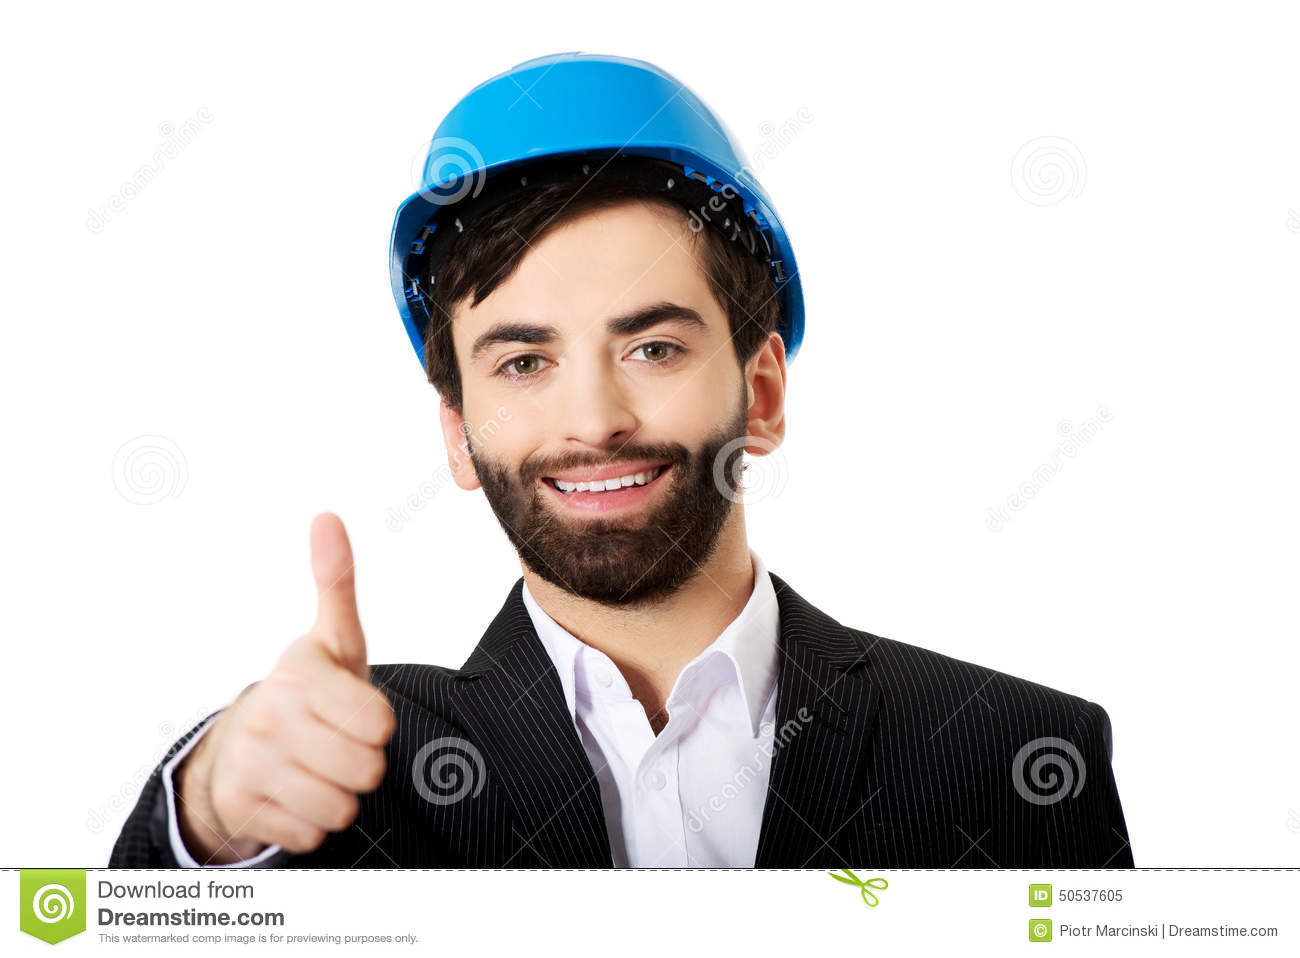 Thumbs up with engineers